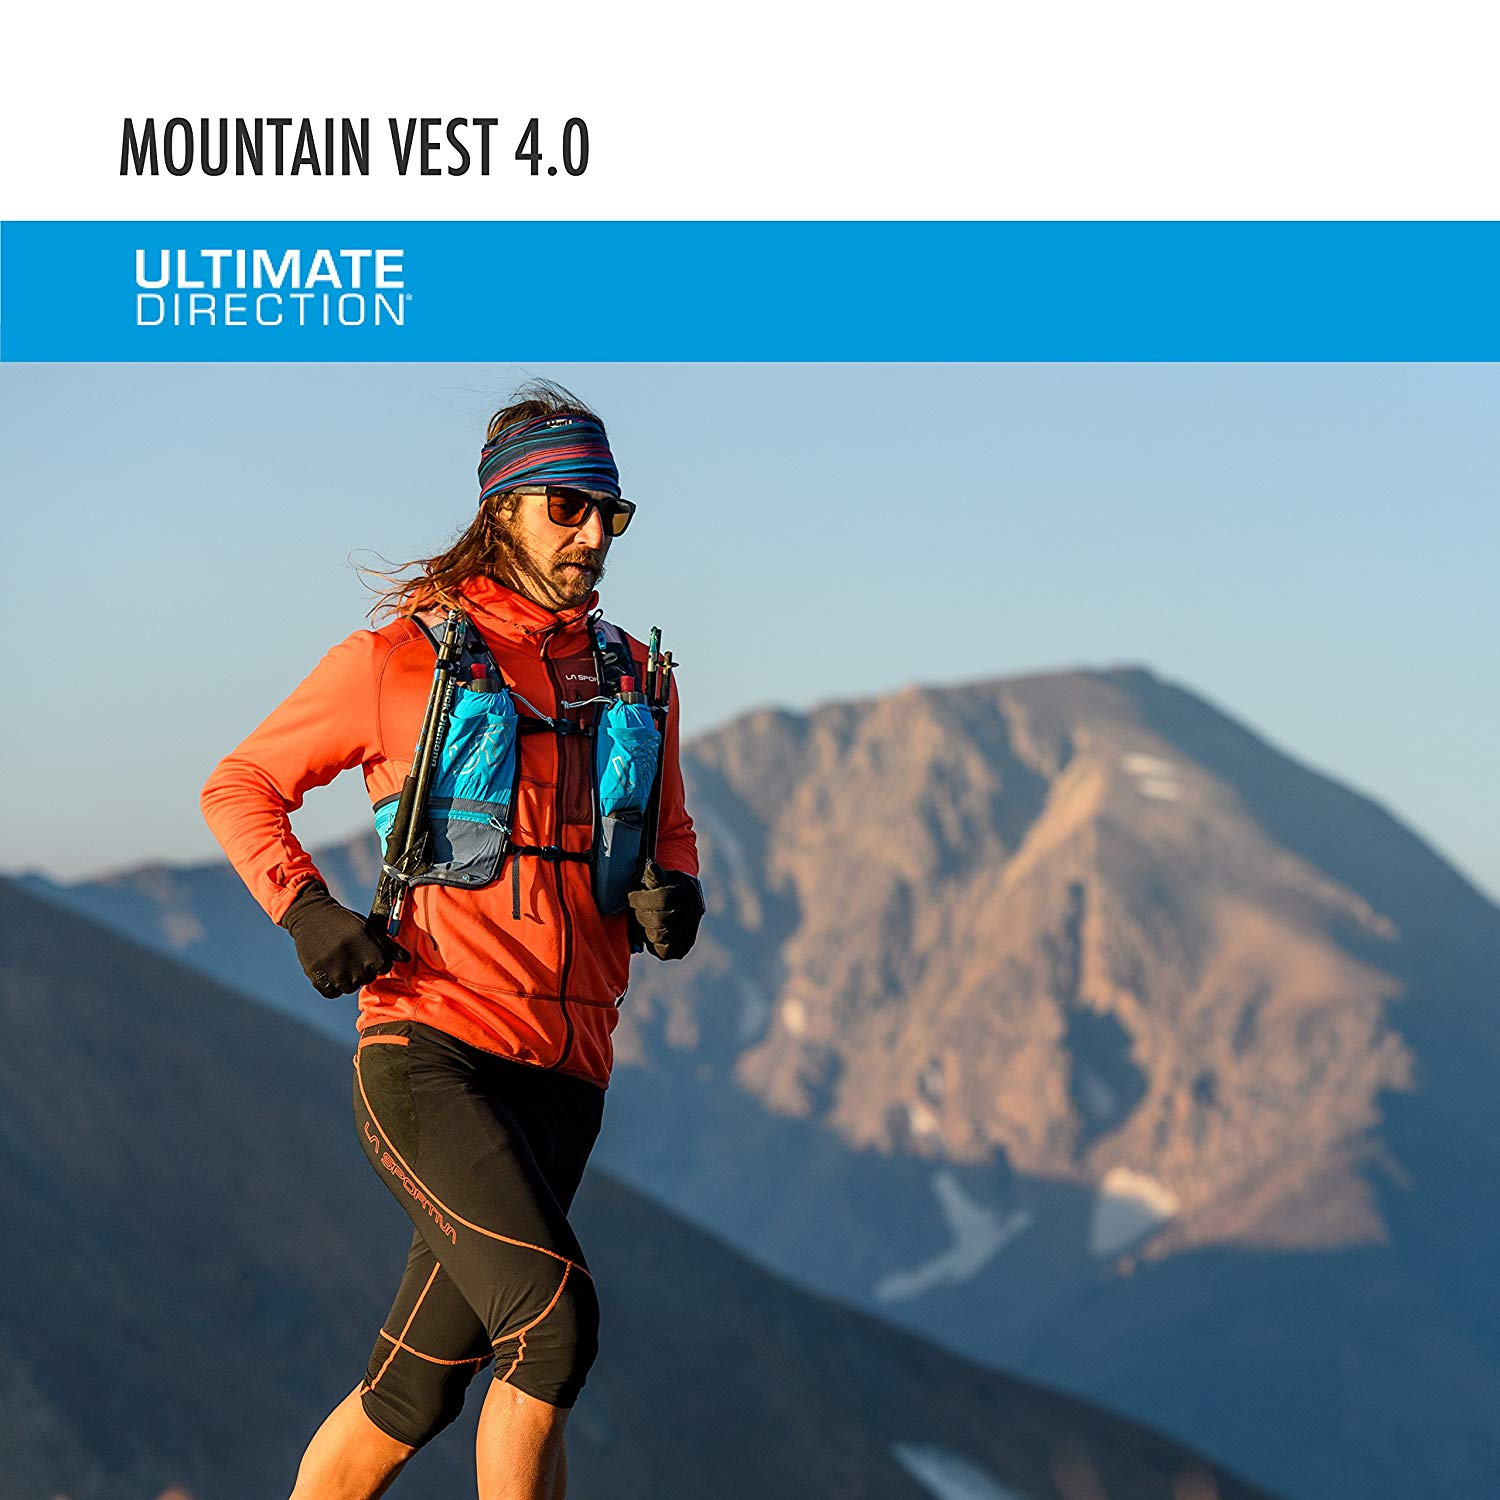 e35fadb52e Ultimate Direction Mountain Vest 4.0Hiking Trail Running Vest Backpack